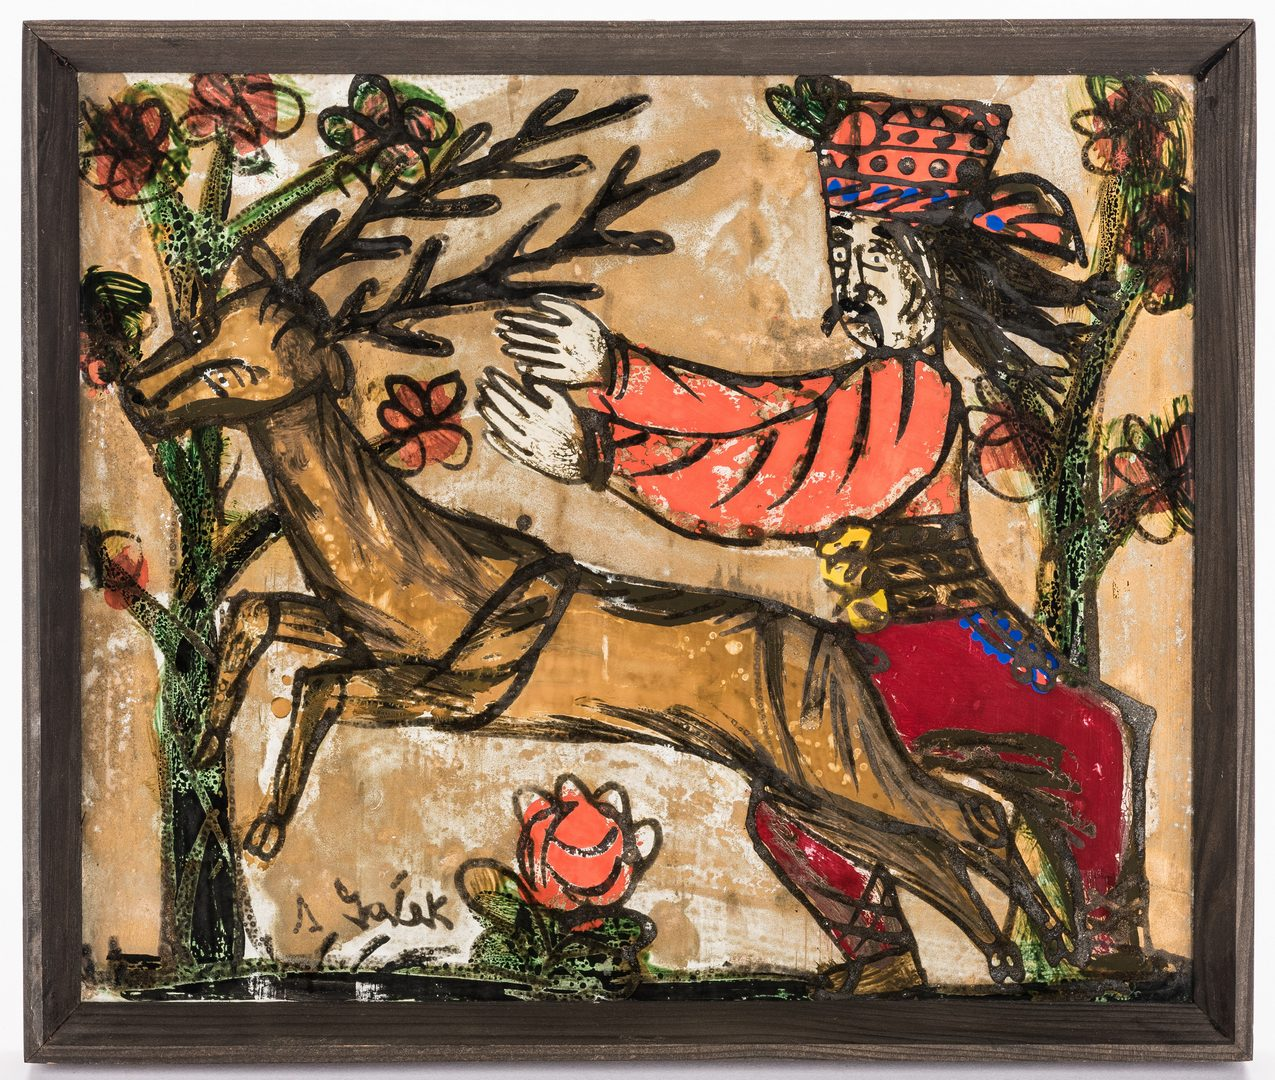 Lot 830: Andrzej Galek folk art painting, Man with Reindeer